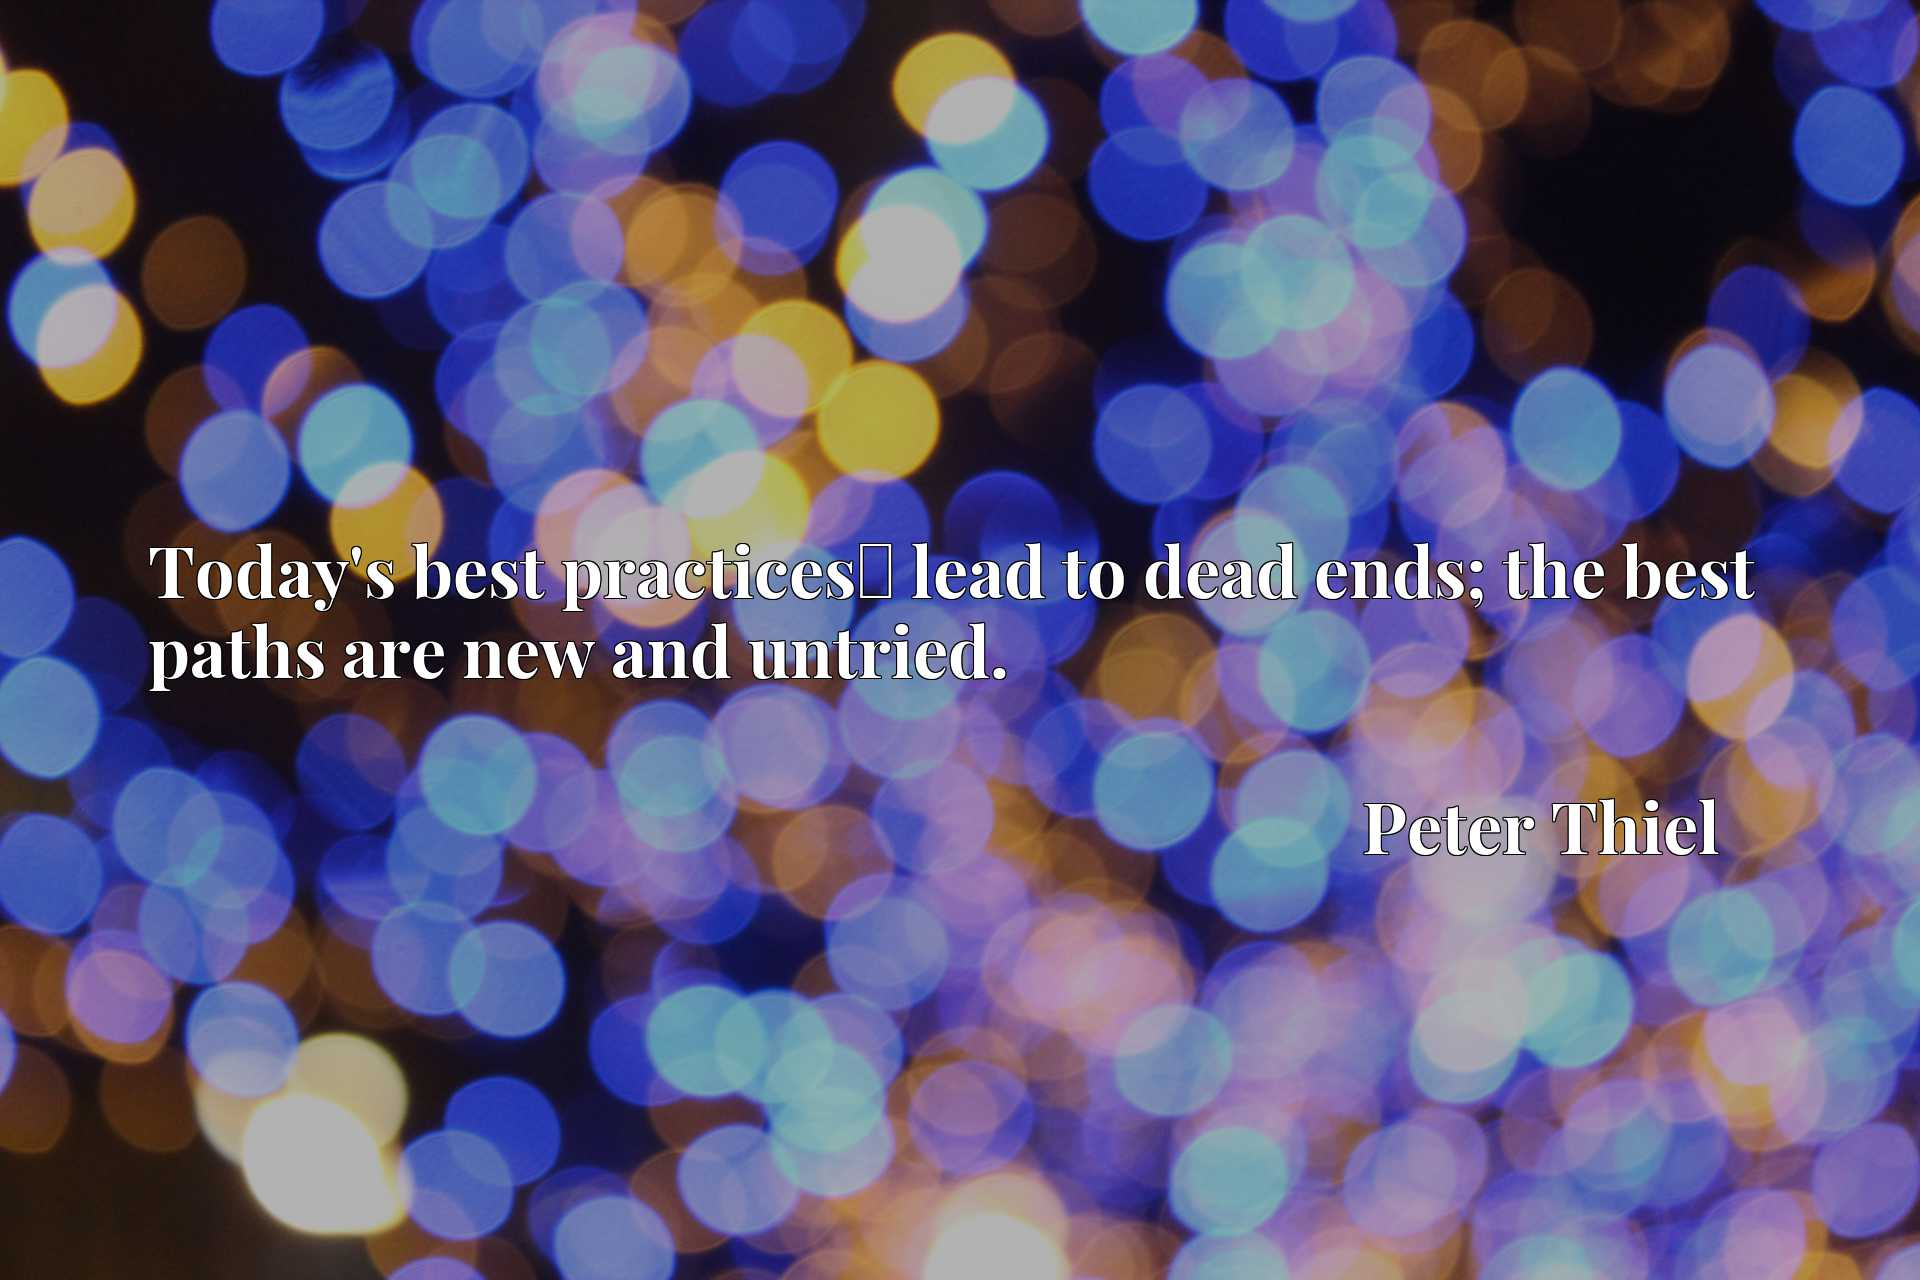 Today's best practicesx9d lead to dead ends; the best paths are new and untried.